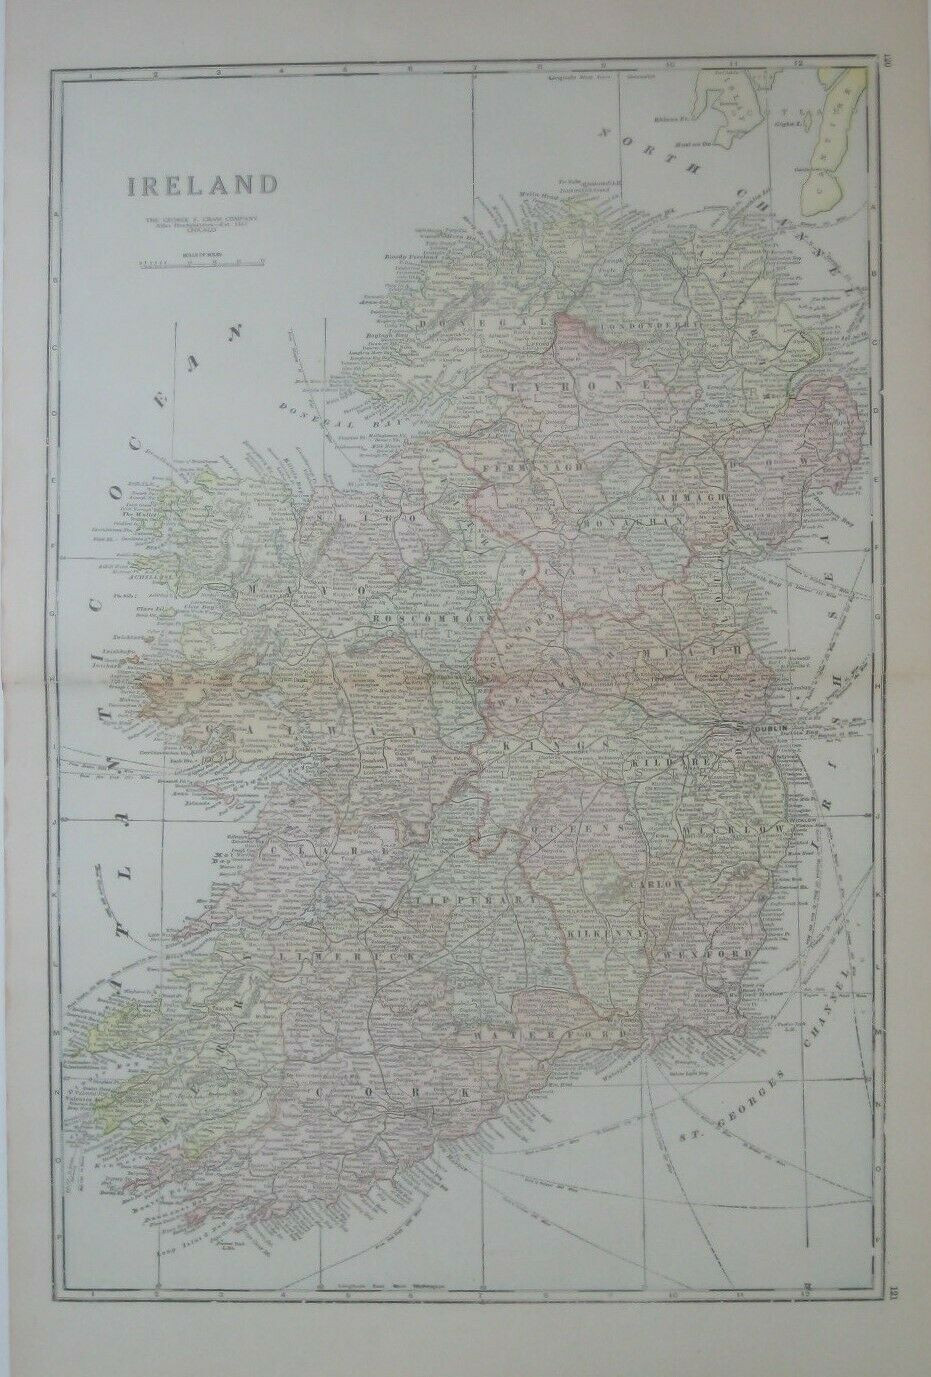 Handsome original antique color lithographed map of Ireland, published in 1921 — a momentous year in Irish history.